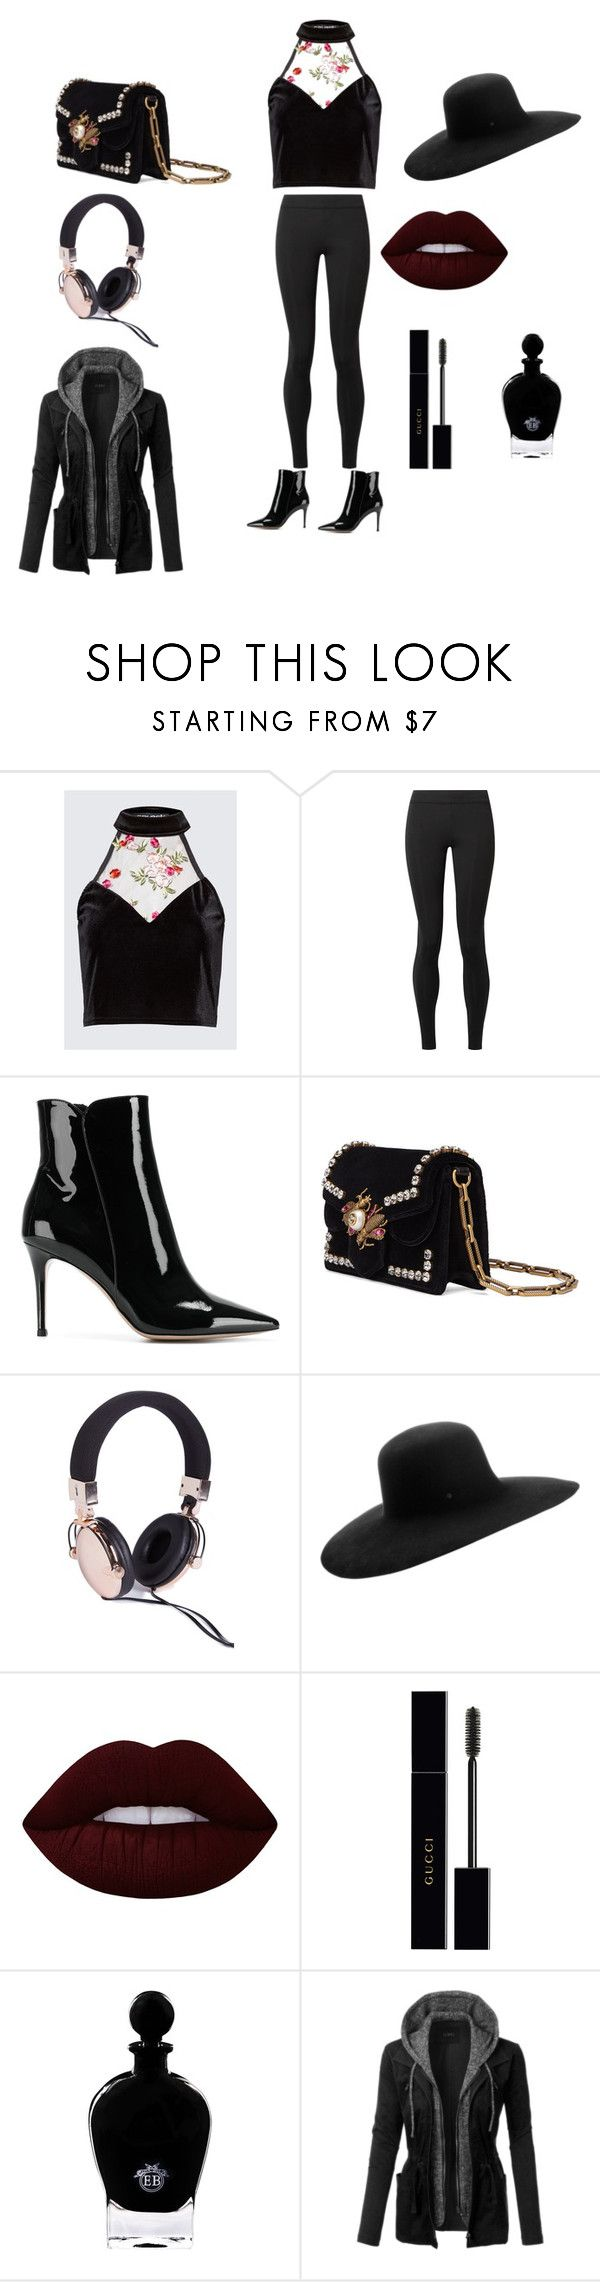 """""""bad girl look"""" by angelmvai on Polyvore featuring The Row, Gianvito Rossi, Gucci, Maison Michel, Lime Crime, EB Florals and LE3NO"""